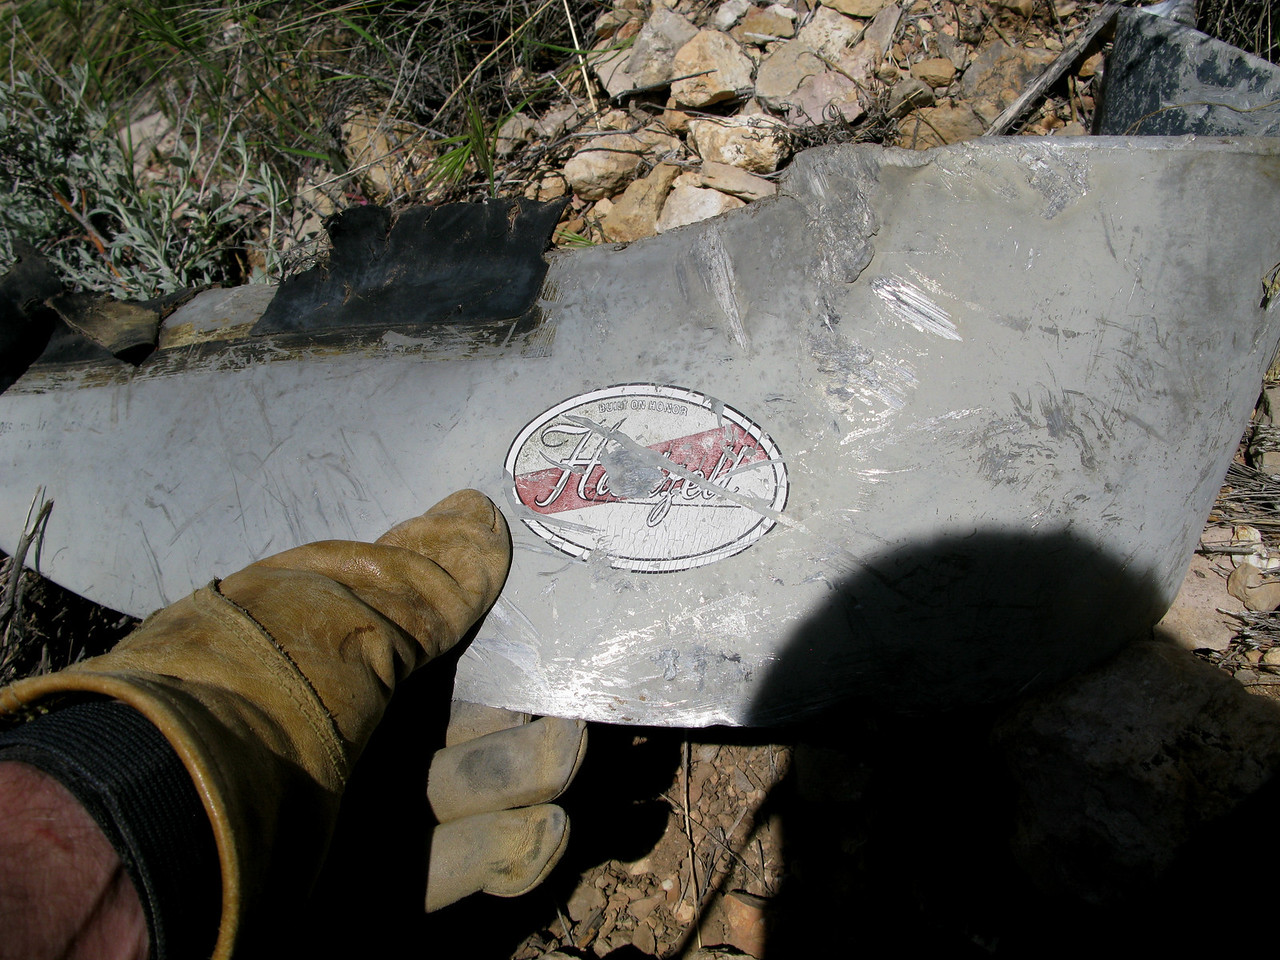 The Hartzell manufacture's logo sticker was visible on the face of this propeller blade.